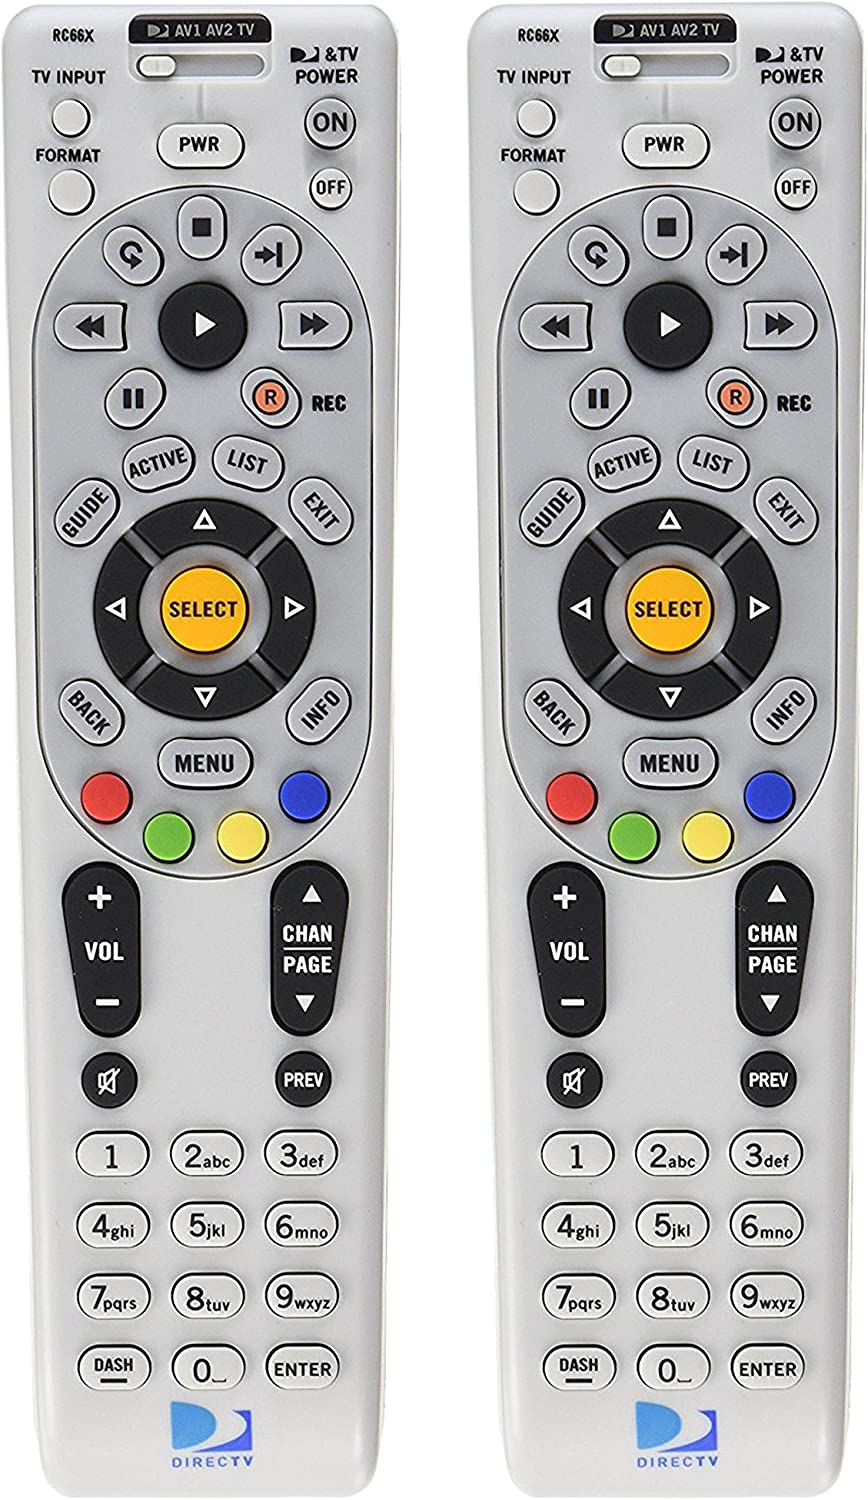 Lot Of 2 Brand New DIRECTV RC66X Universal Remote Control Replaces RC65X